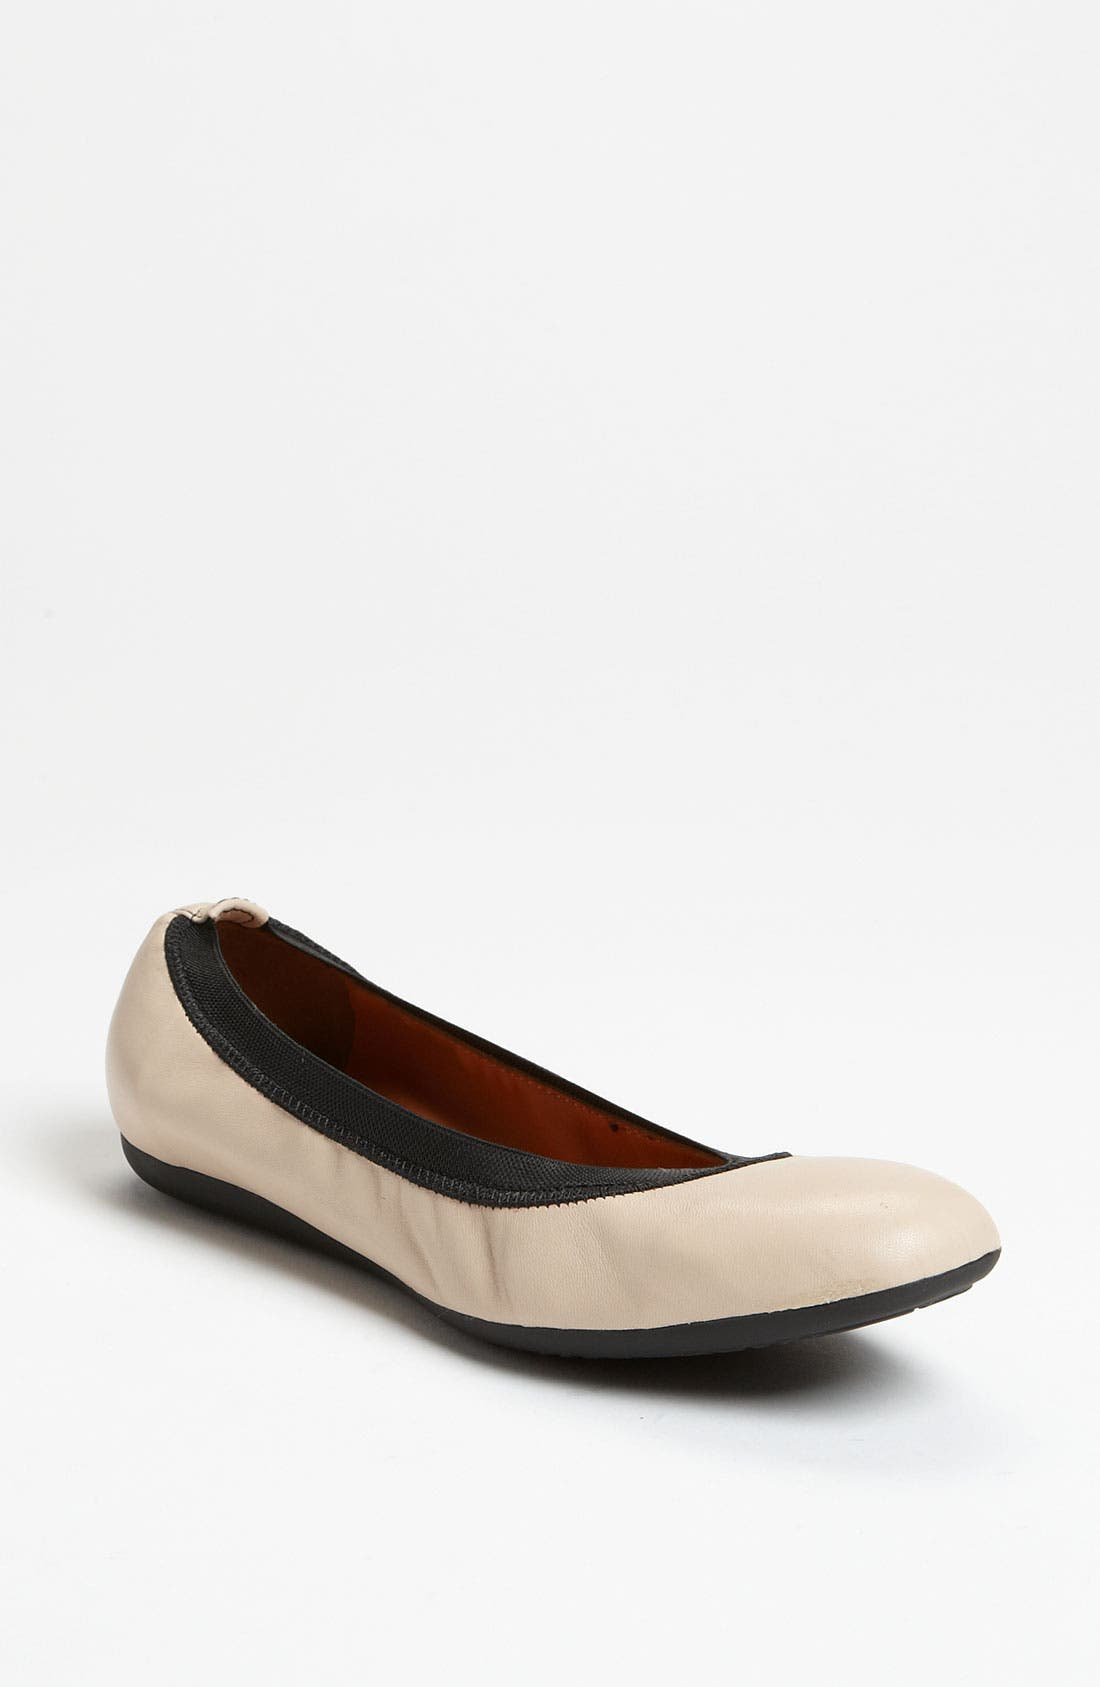 Alternate Image 1 Selected - Geox 'Donna Lola' Flat